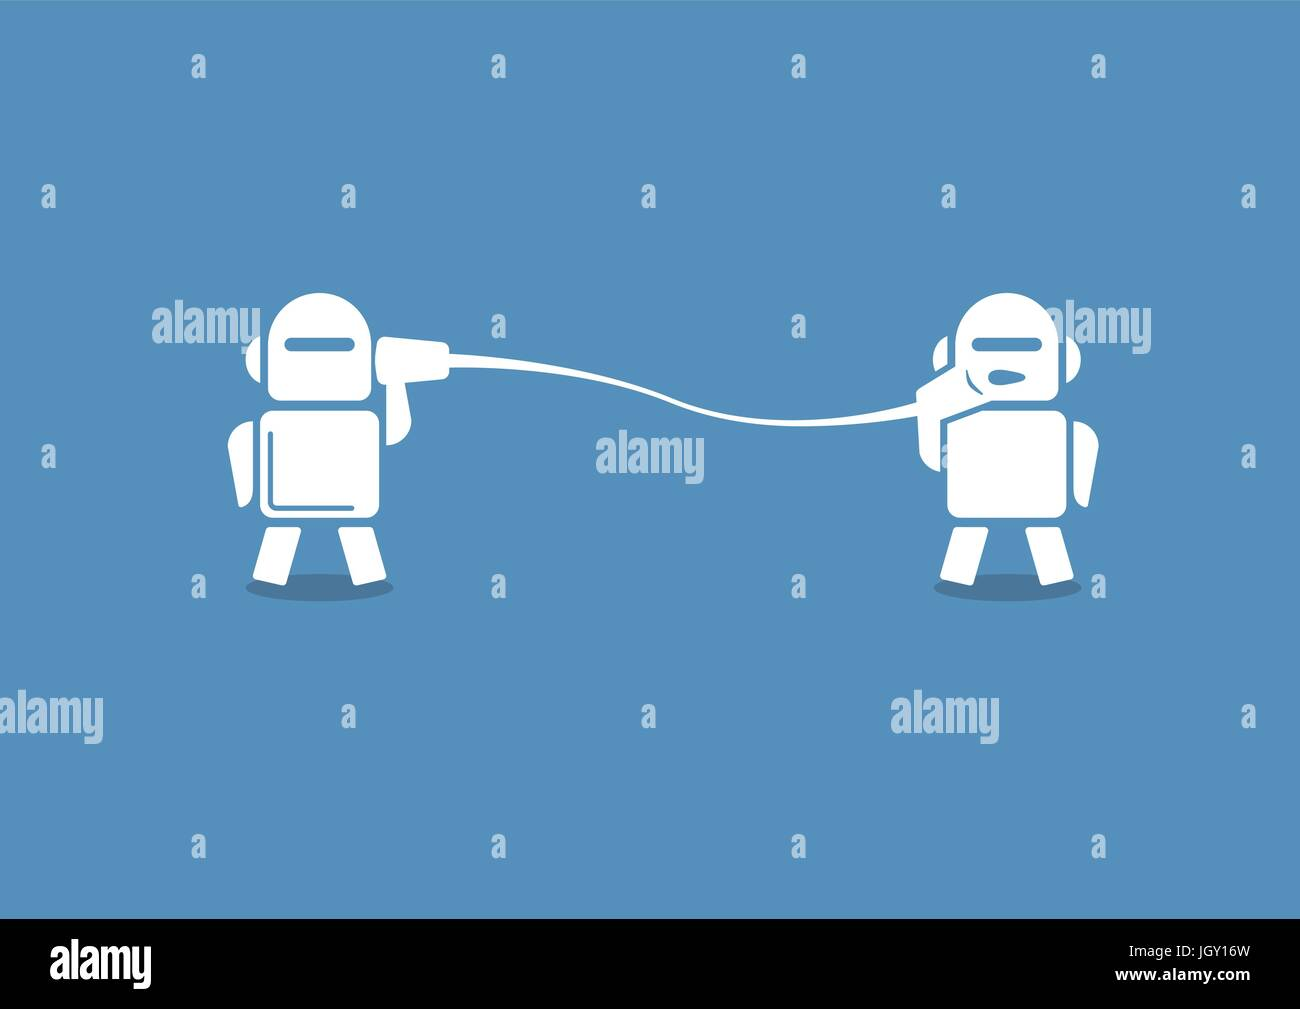 Robo advisor concept as vector illustration. Two robots communicating with each other on blue background. Stock Vector